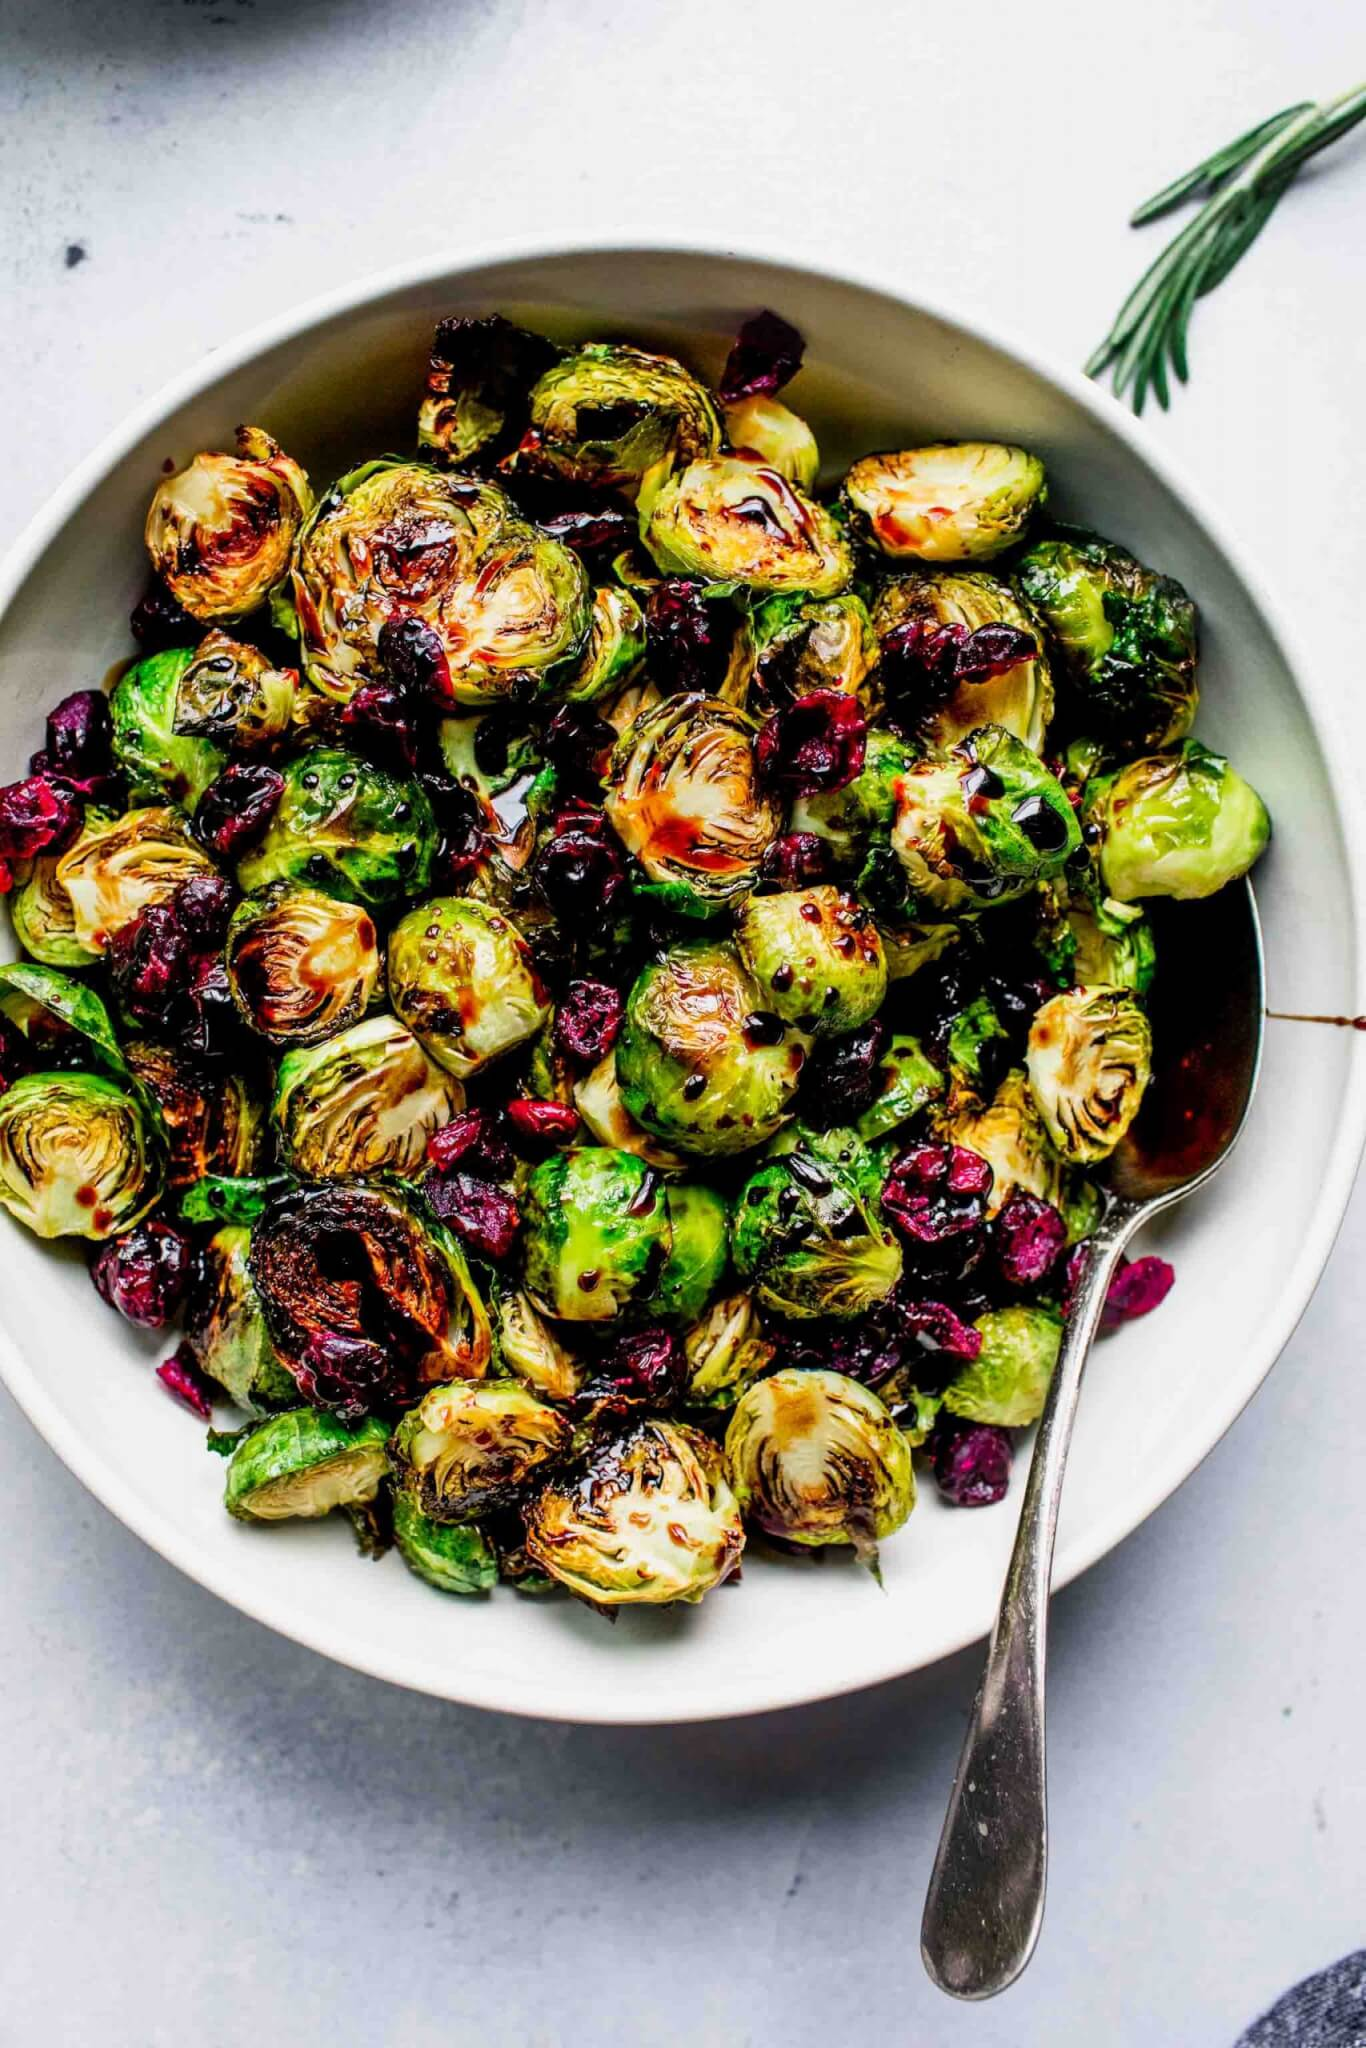 Roasted sprouts in bowl drizzled with balsamic glaze and sprinkled with cranberries.